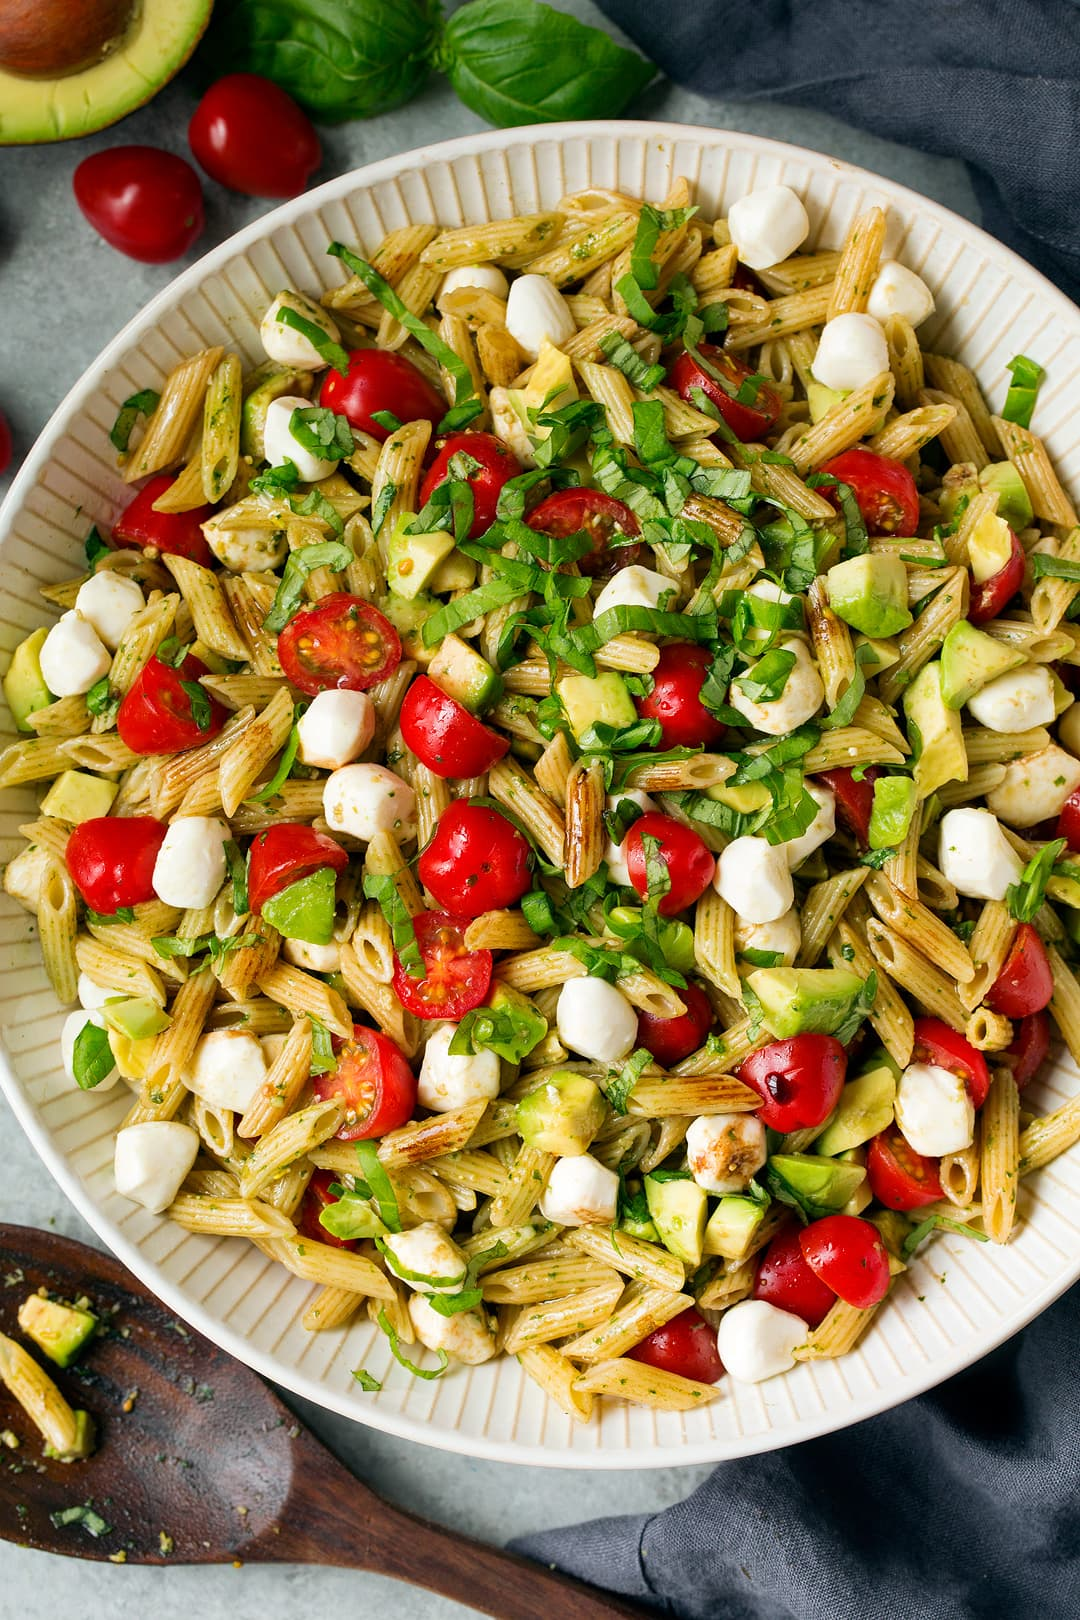 Avocado Caprese Pasta Salad in large white serving bowl